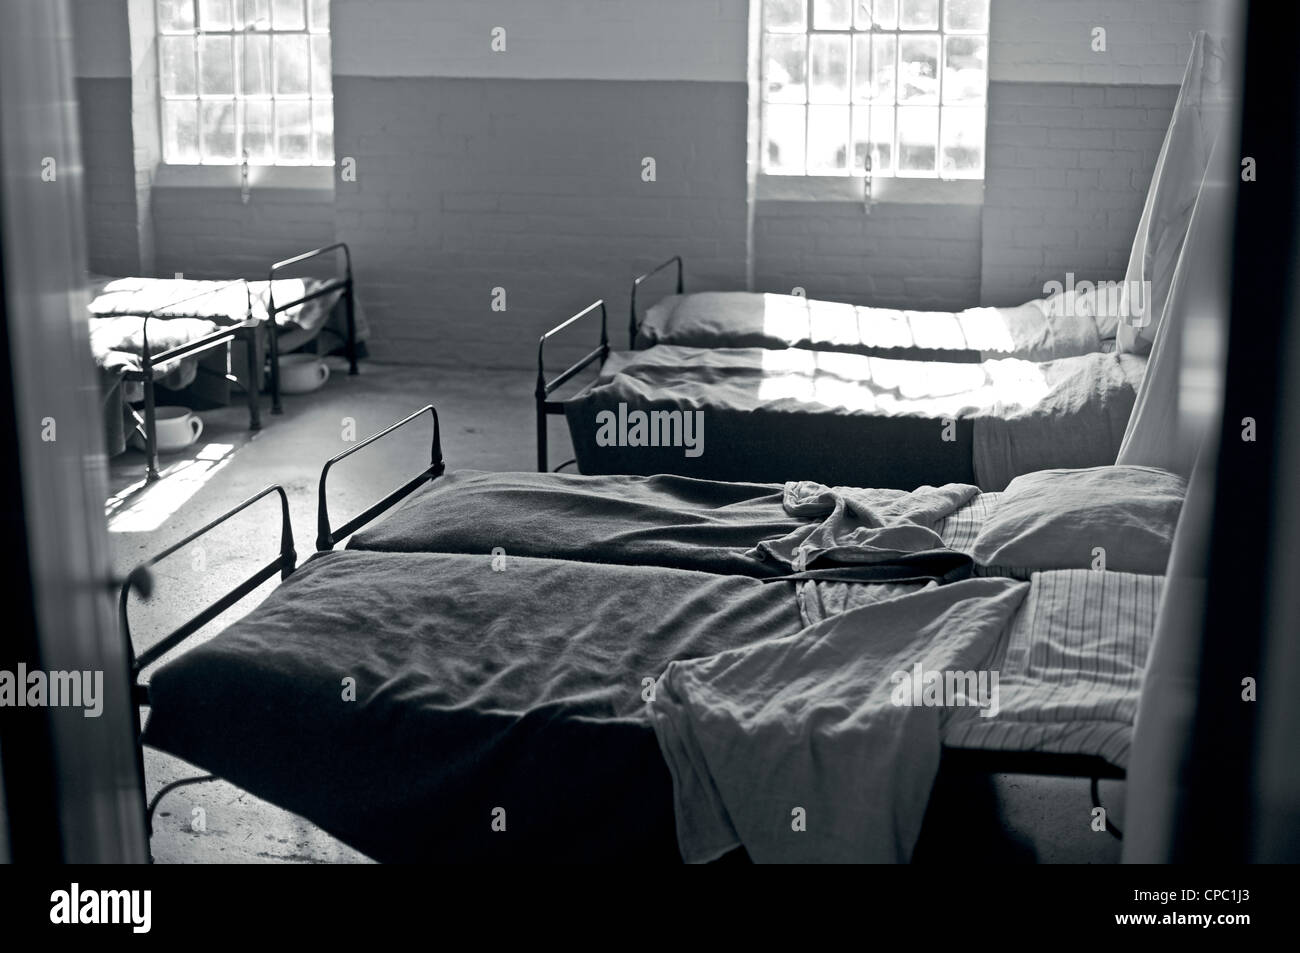 bedroom in a workhouse Stock Photo: 48207883 - Alamy